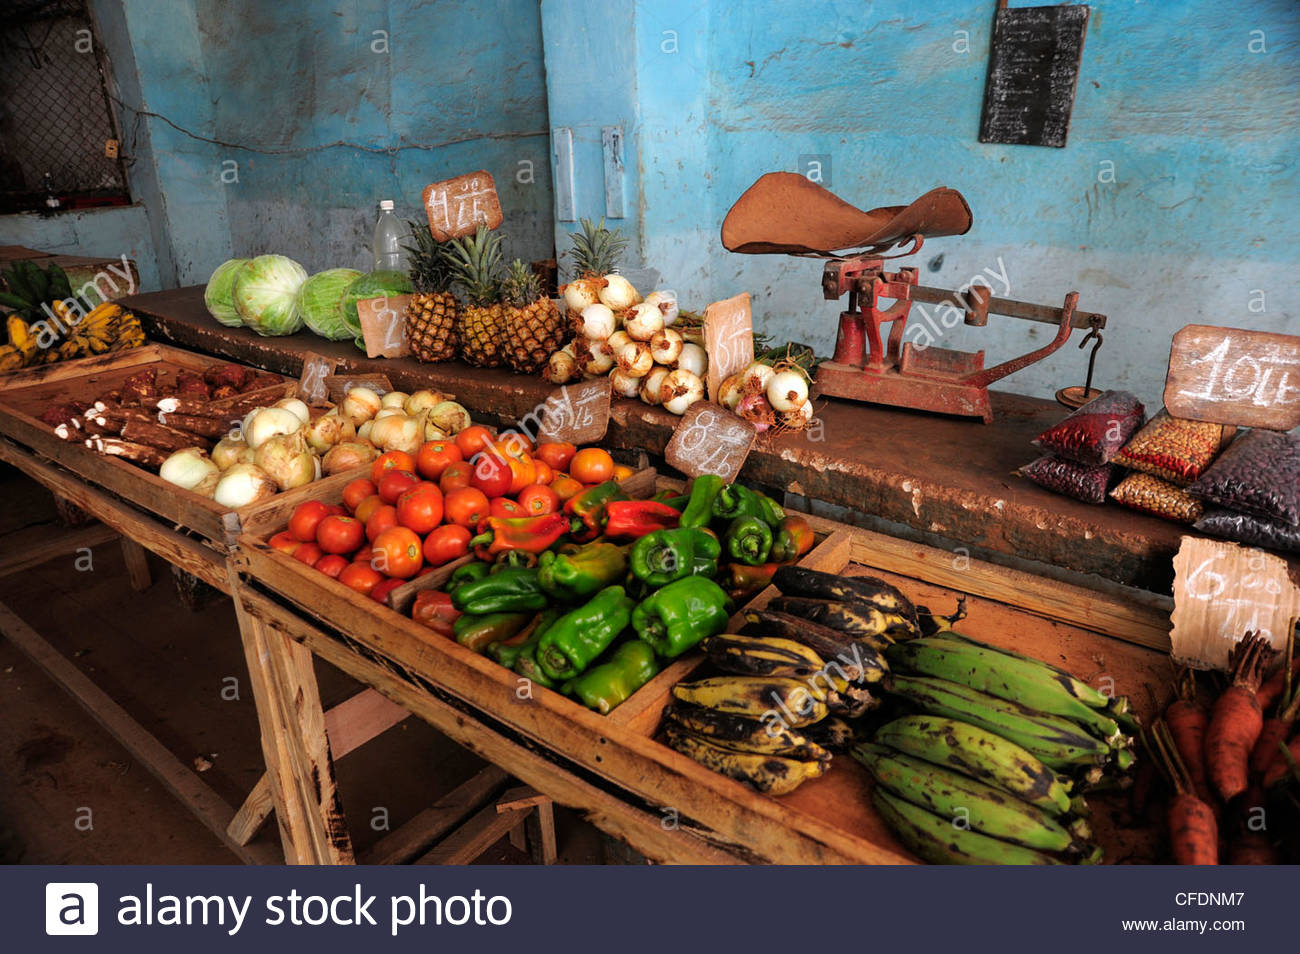 Fruit and vegetables in a greengrocers shop in the historic Old Town of Havana, Habana Vieja, city center of Havana, - Stock Image